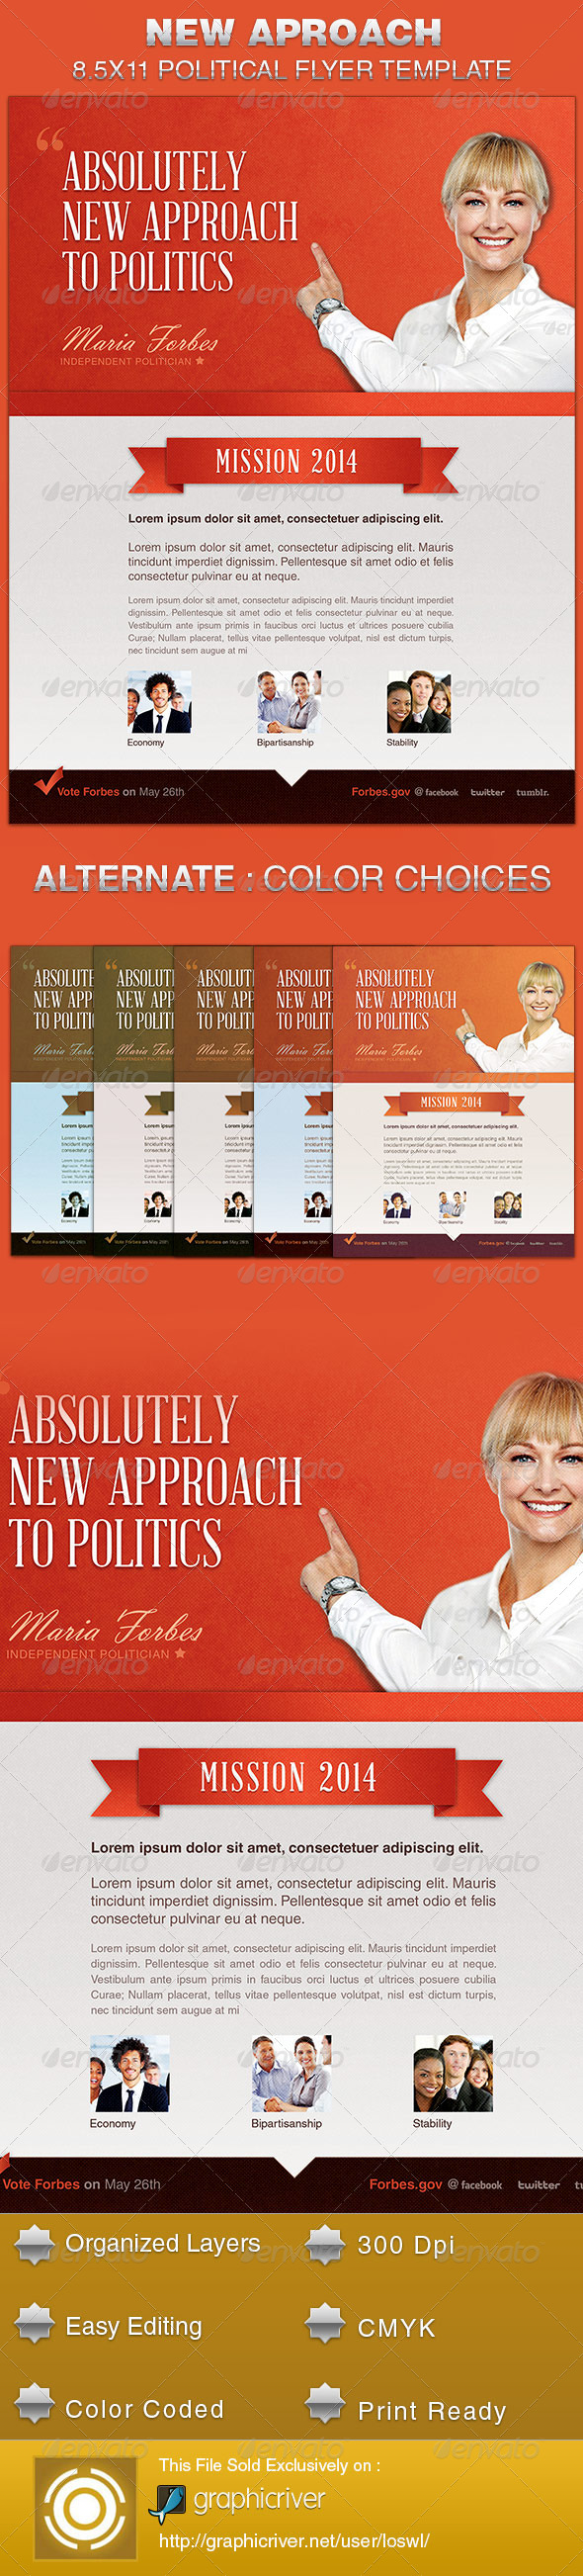 GraphicRiver New Approach Political Flyer Template 5522884